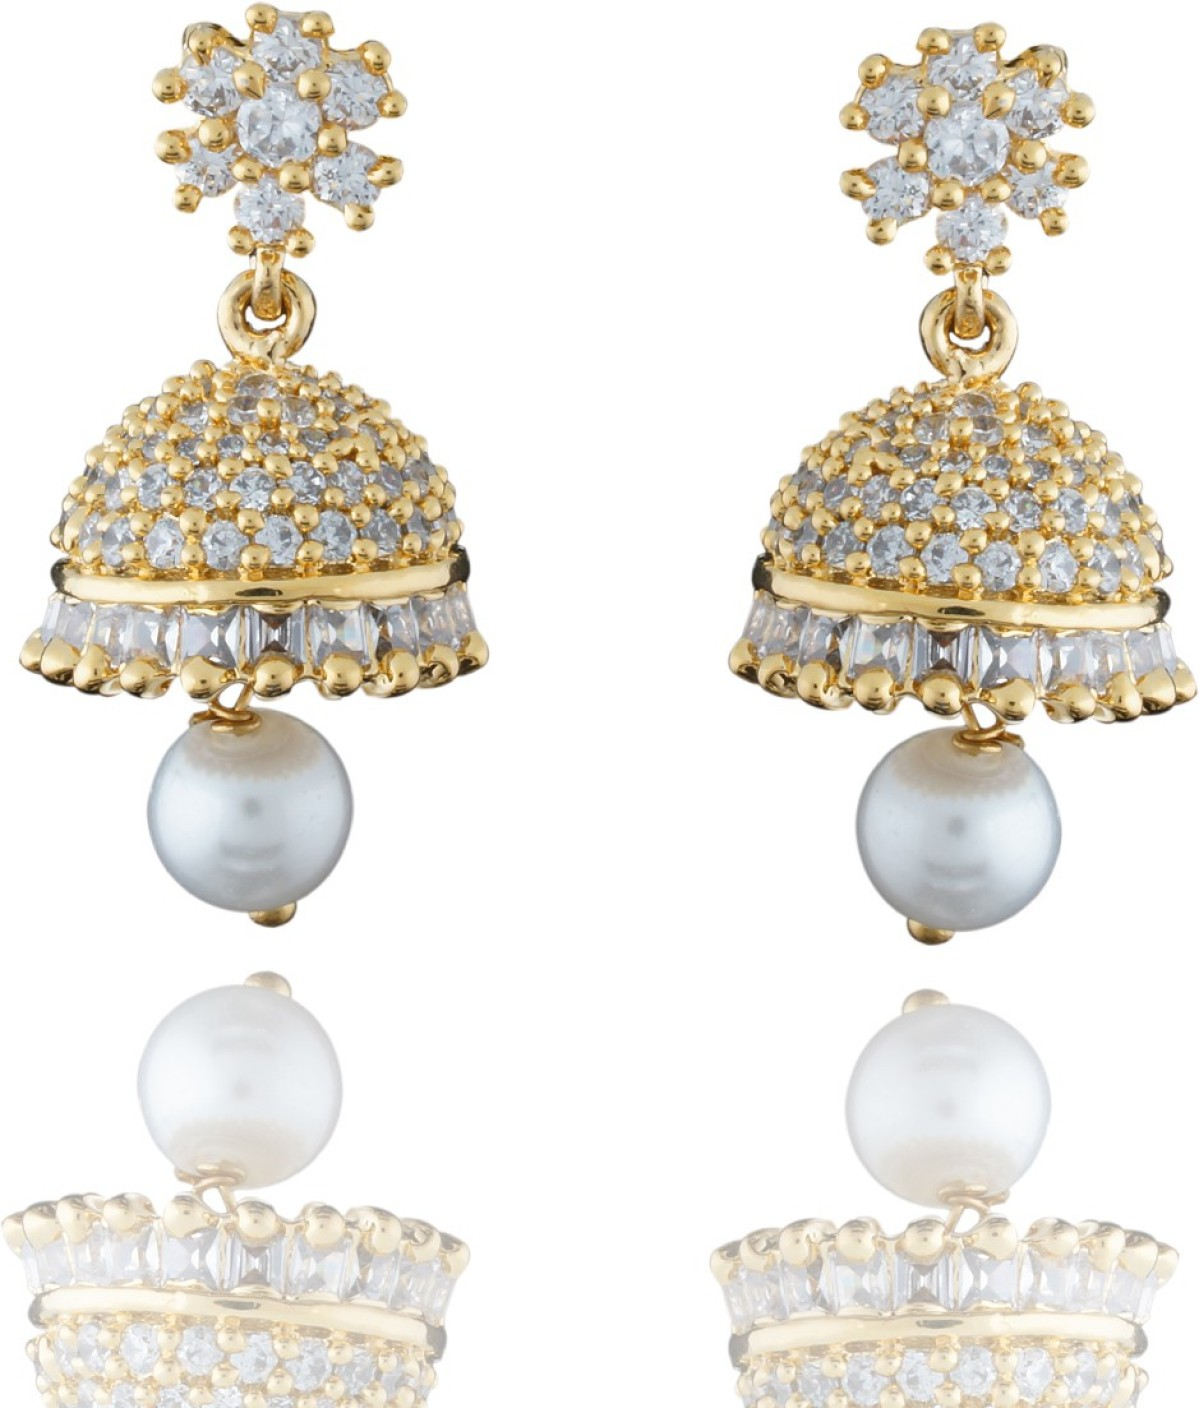 cdf2a7c55d4ea Flipkart.com - Buy Chaahat Fashion Jewellery Gold Plated With Cz ...